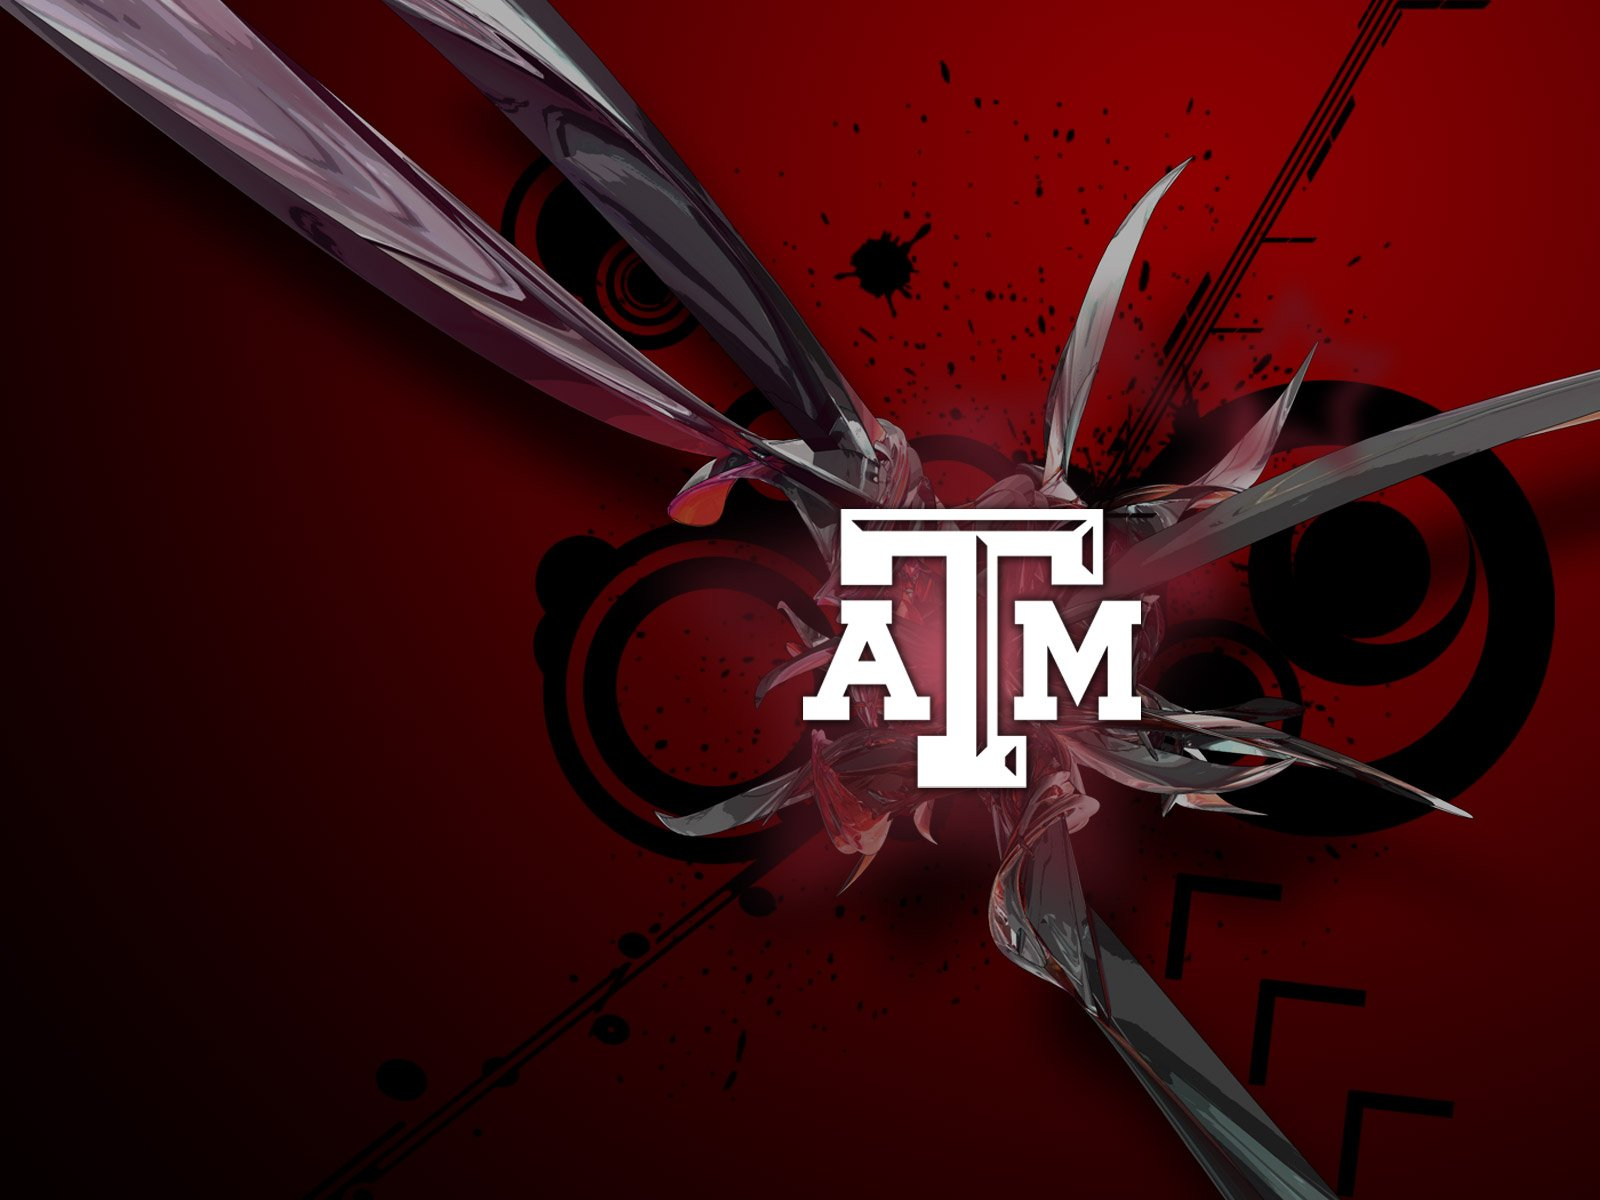 Texas AM Downloads for Every Aggies Fan 1600x1200